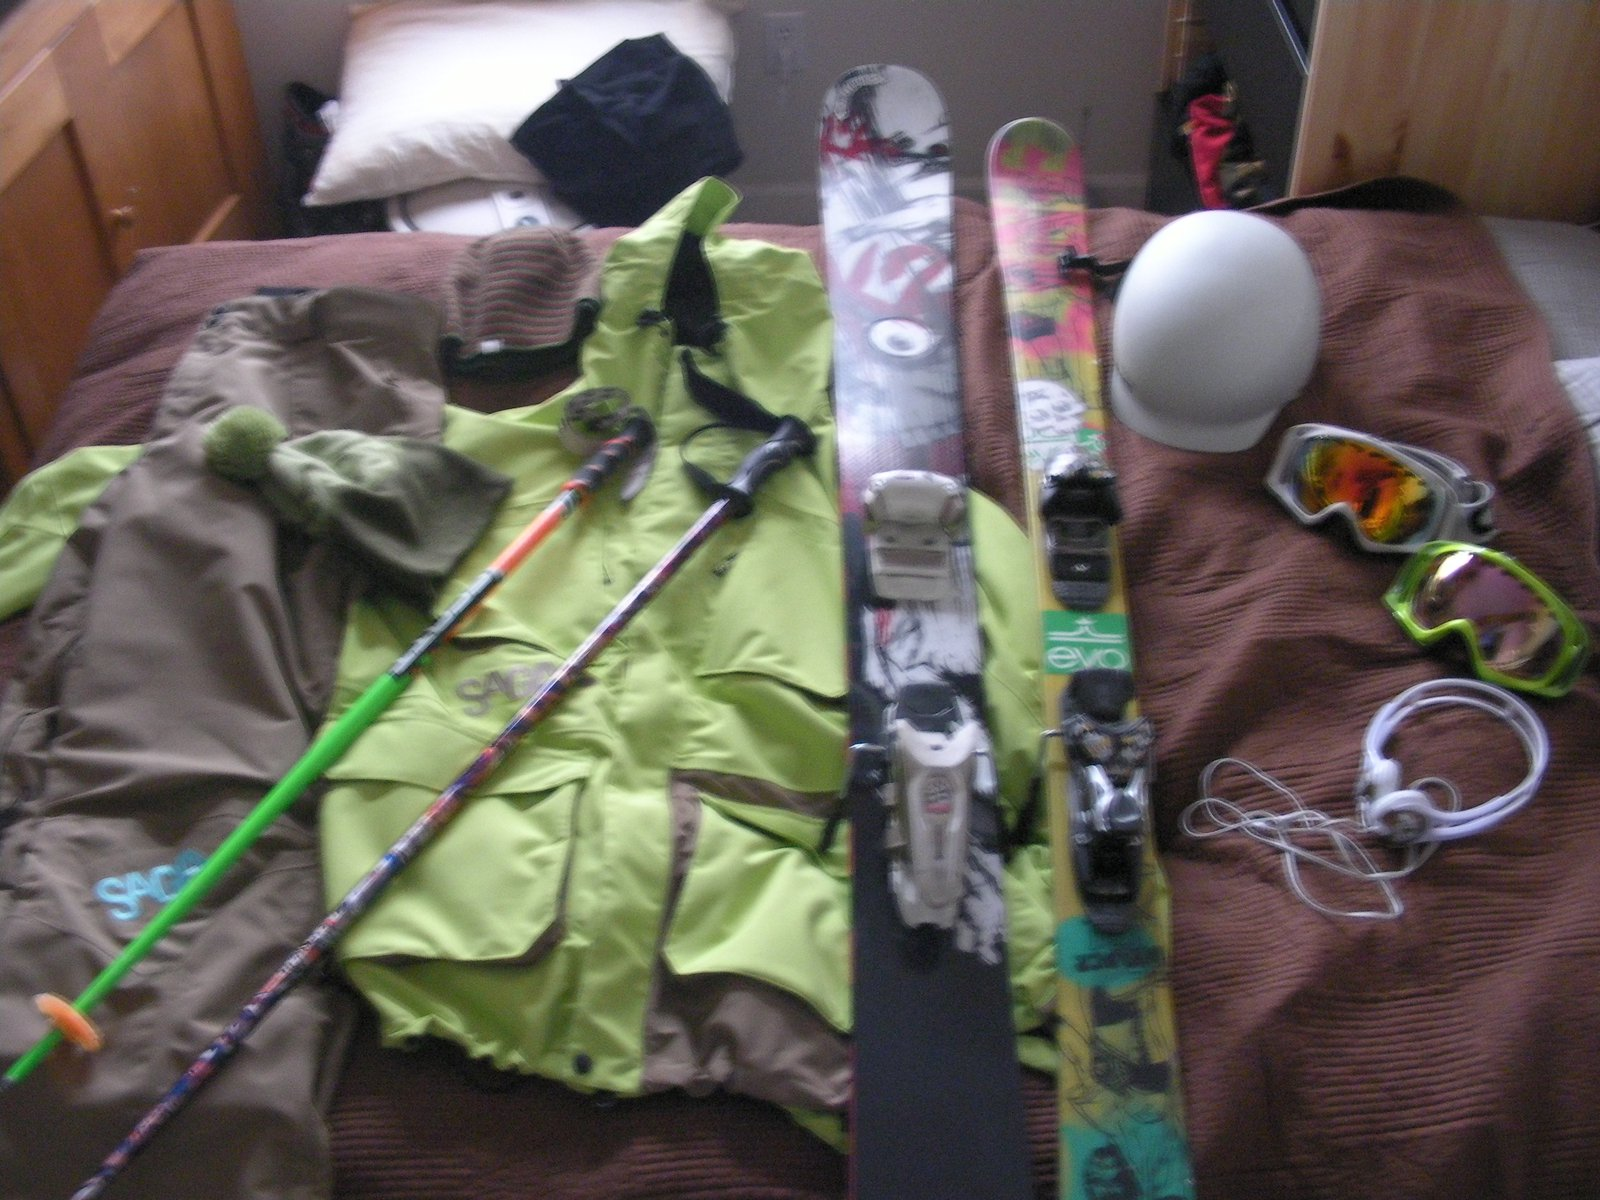 Some new gear and some old gear waiting for next season